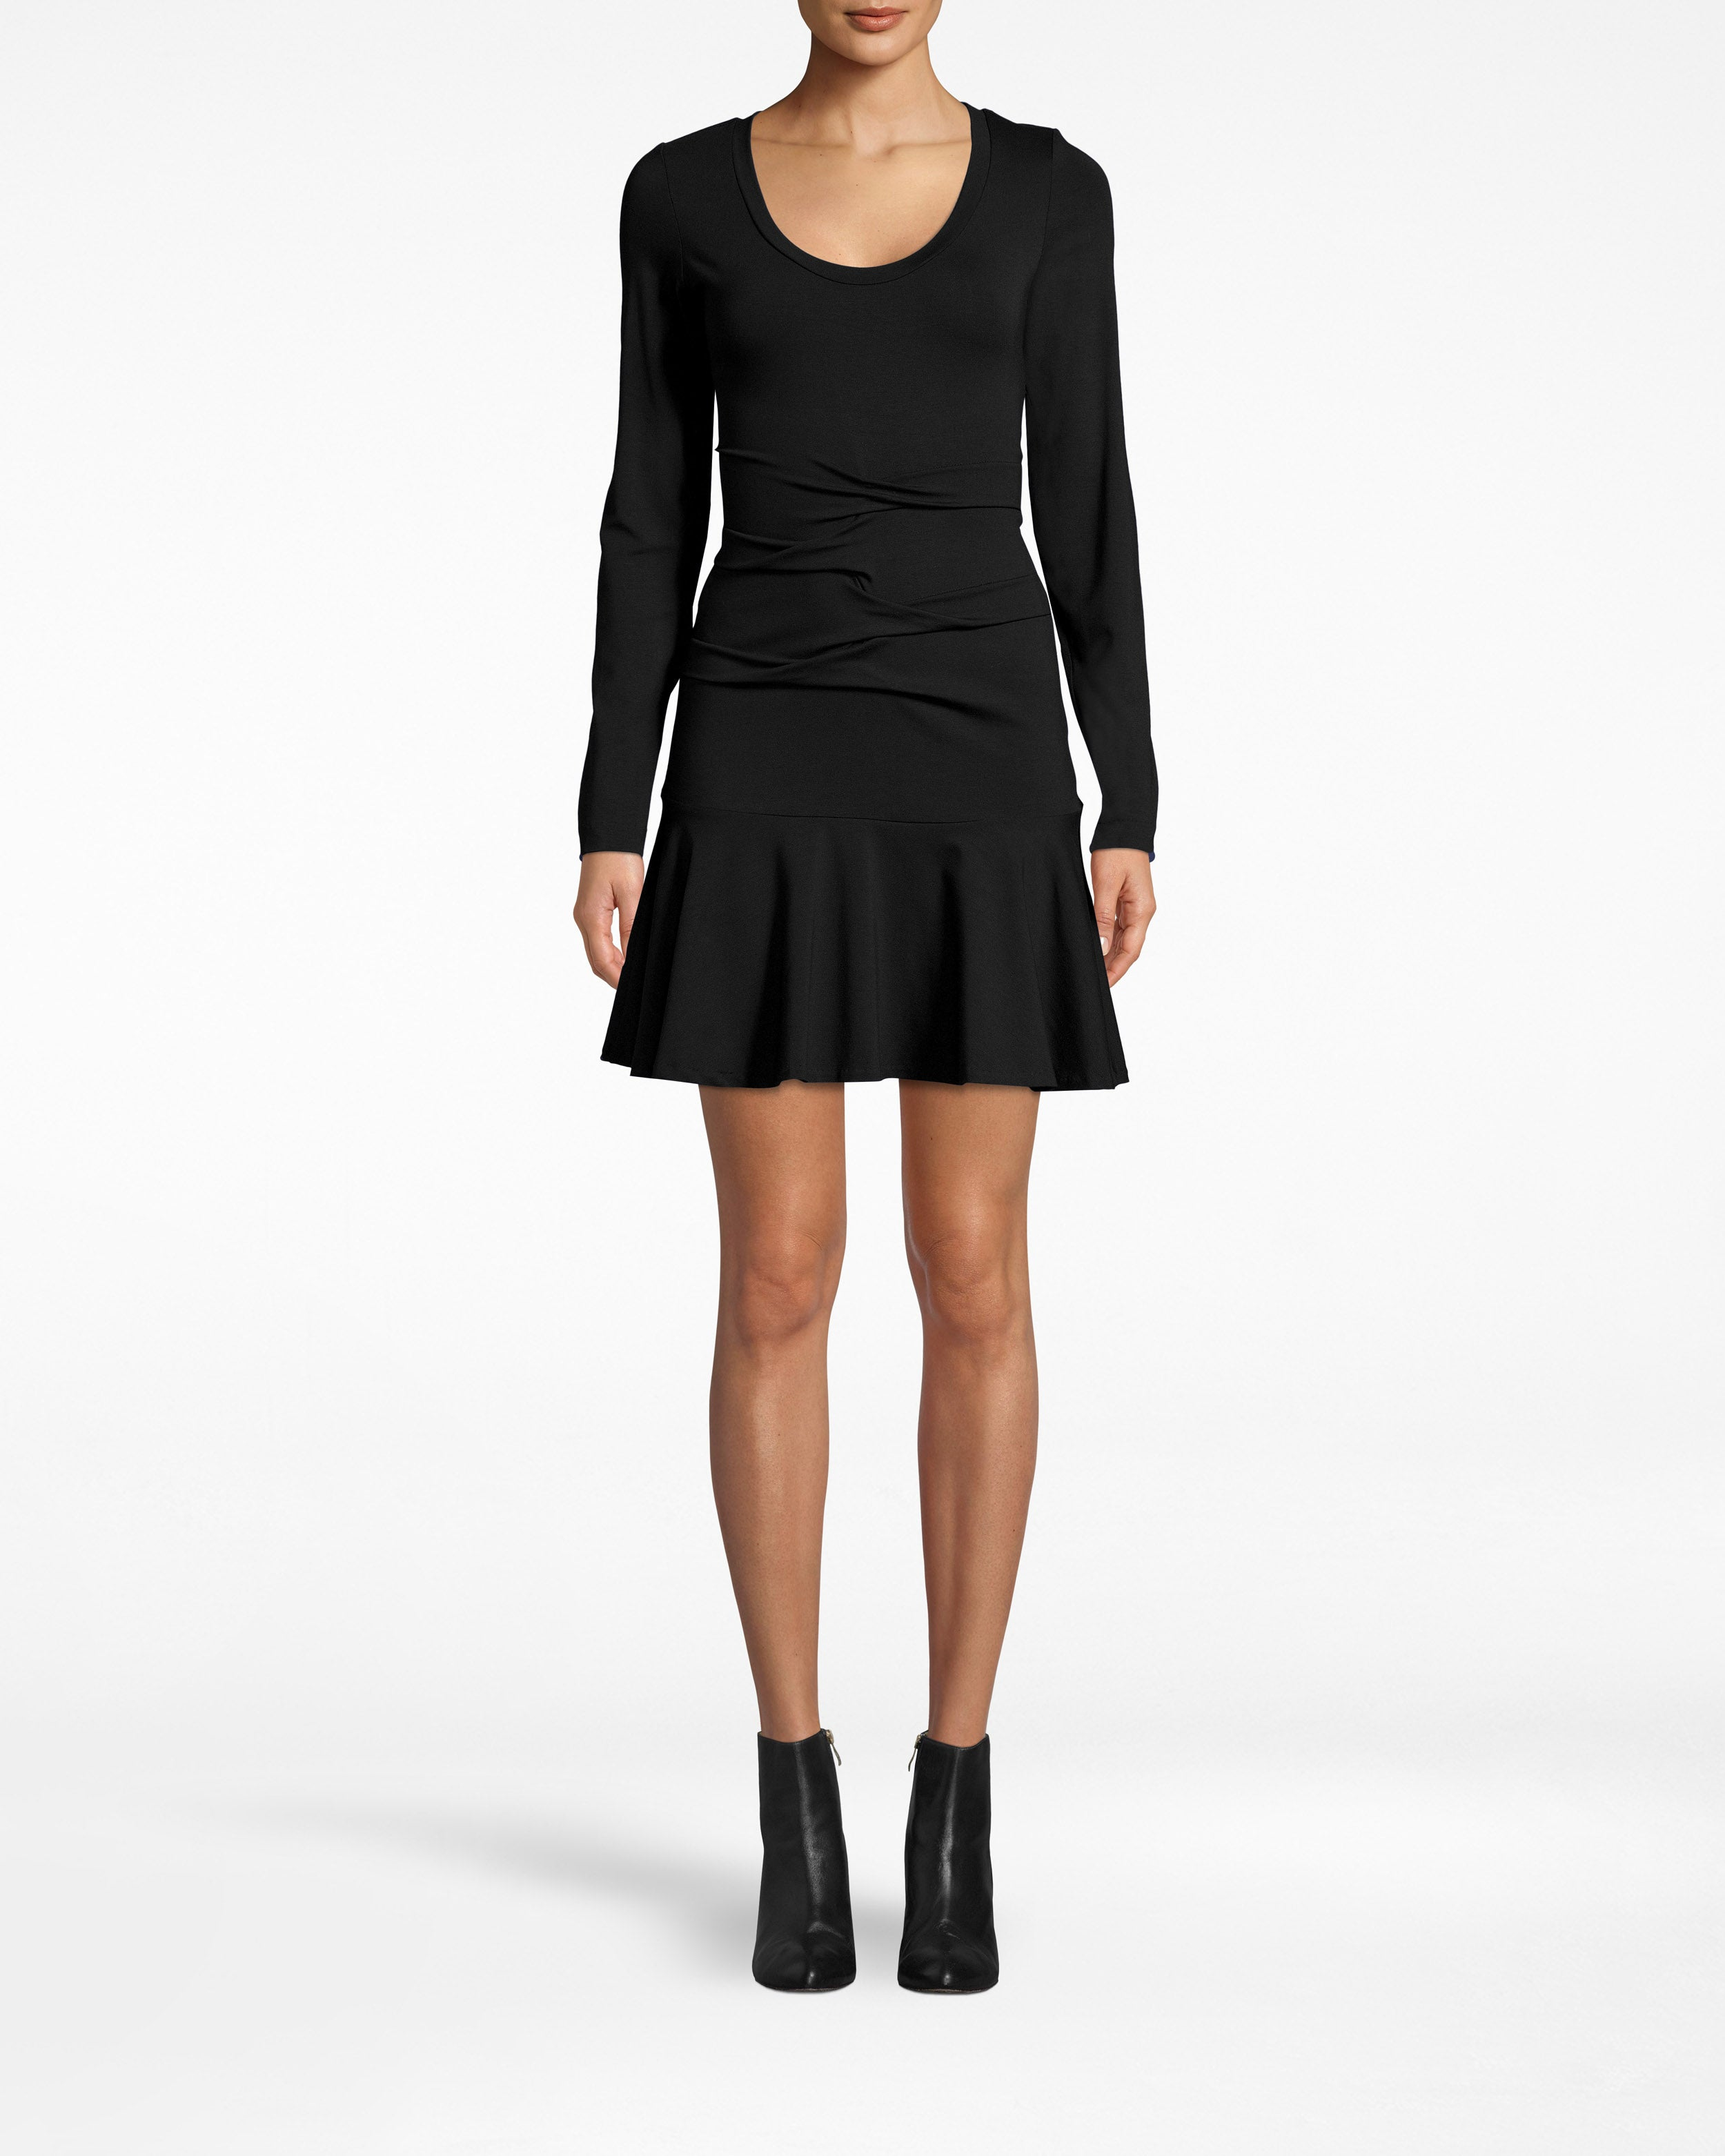 nicole miller jersey tidal pleat flare dress in black | spandex/leather/rayon | size petite